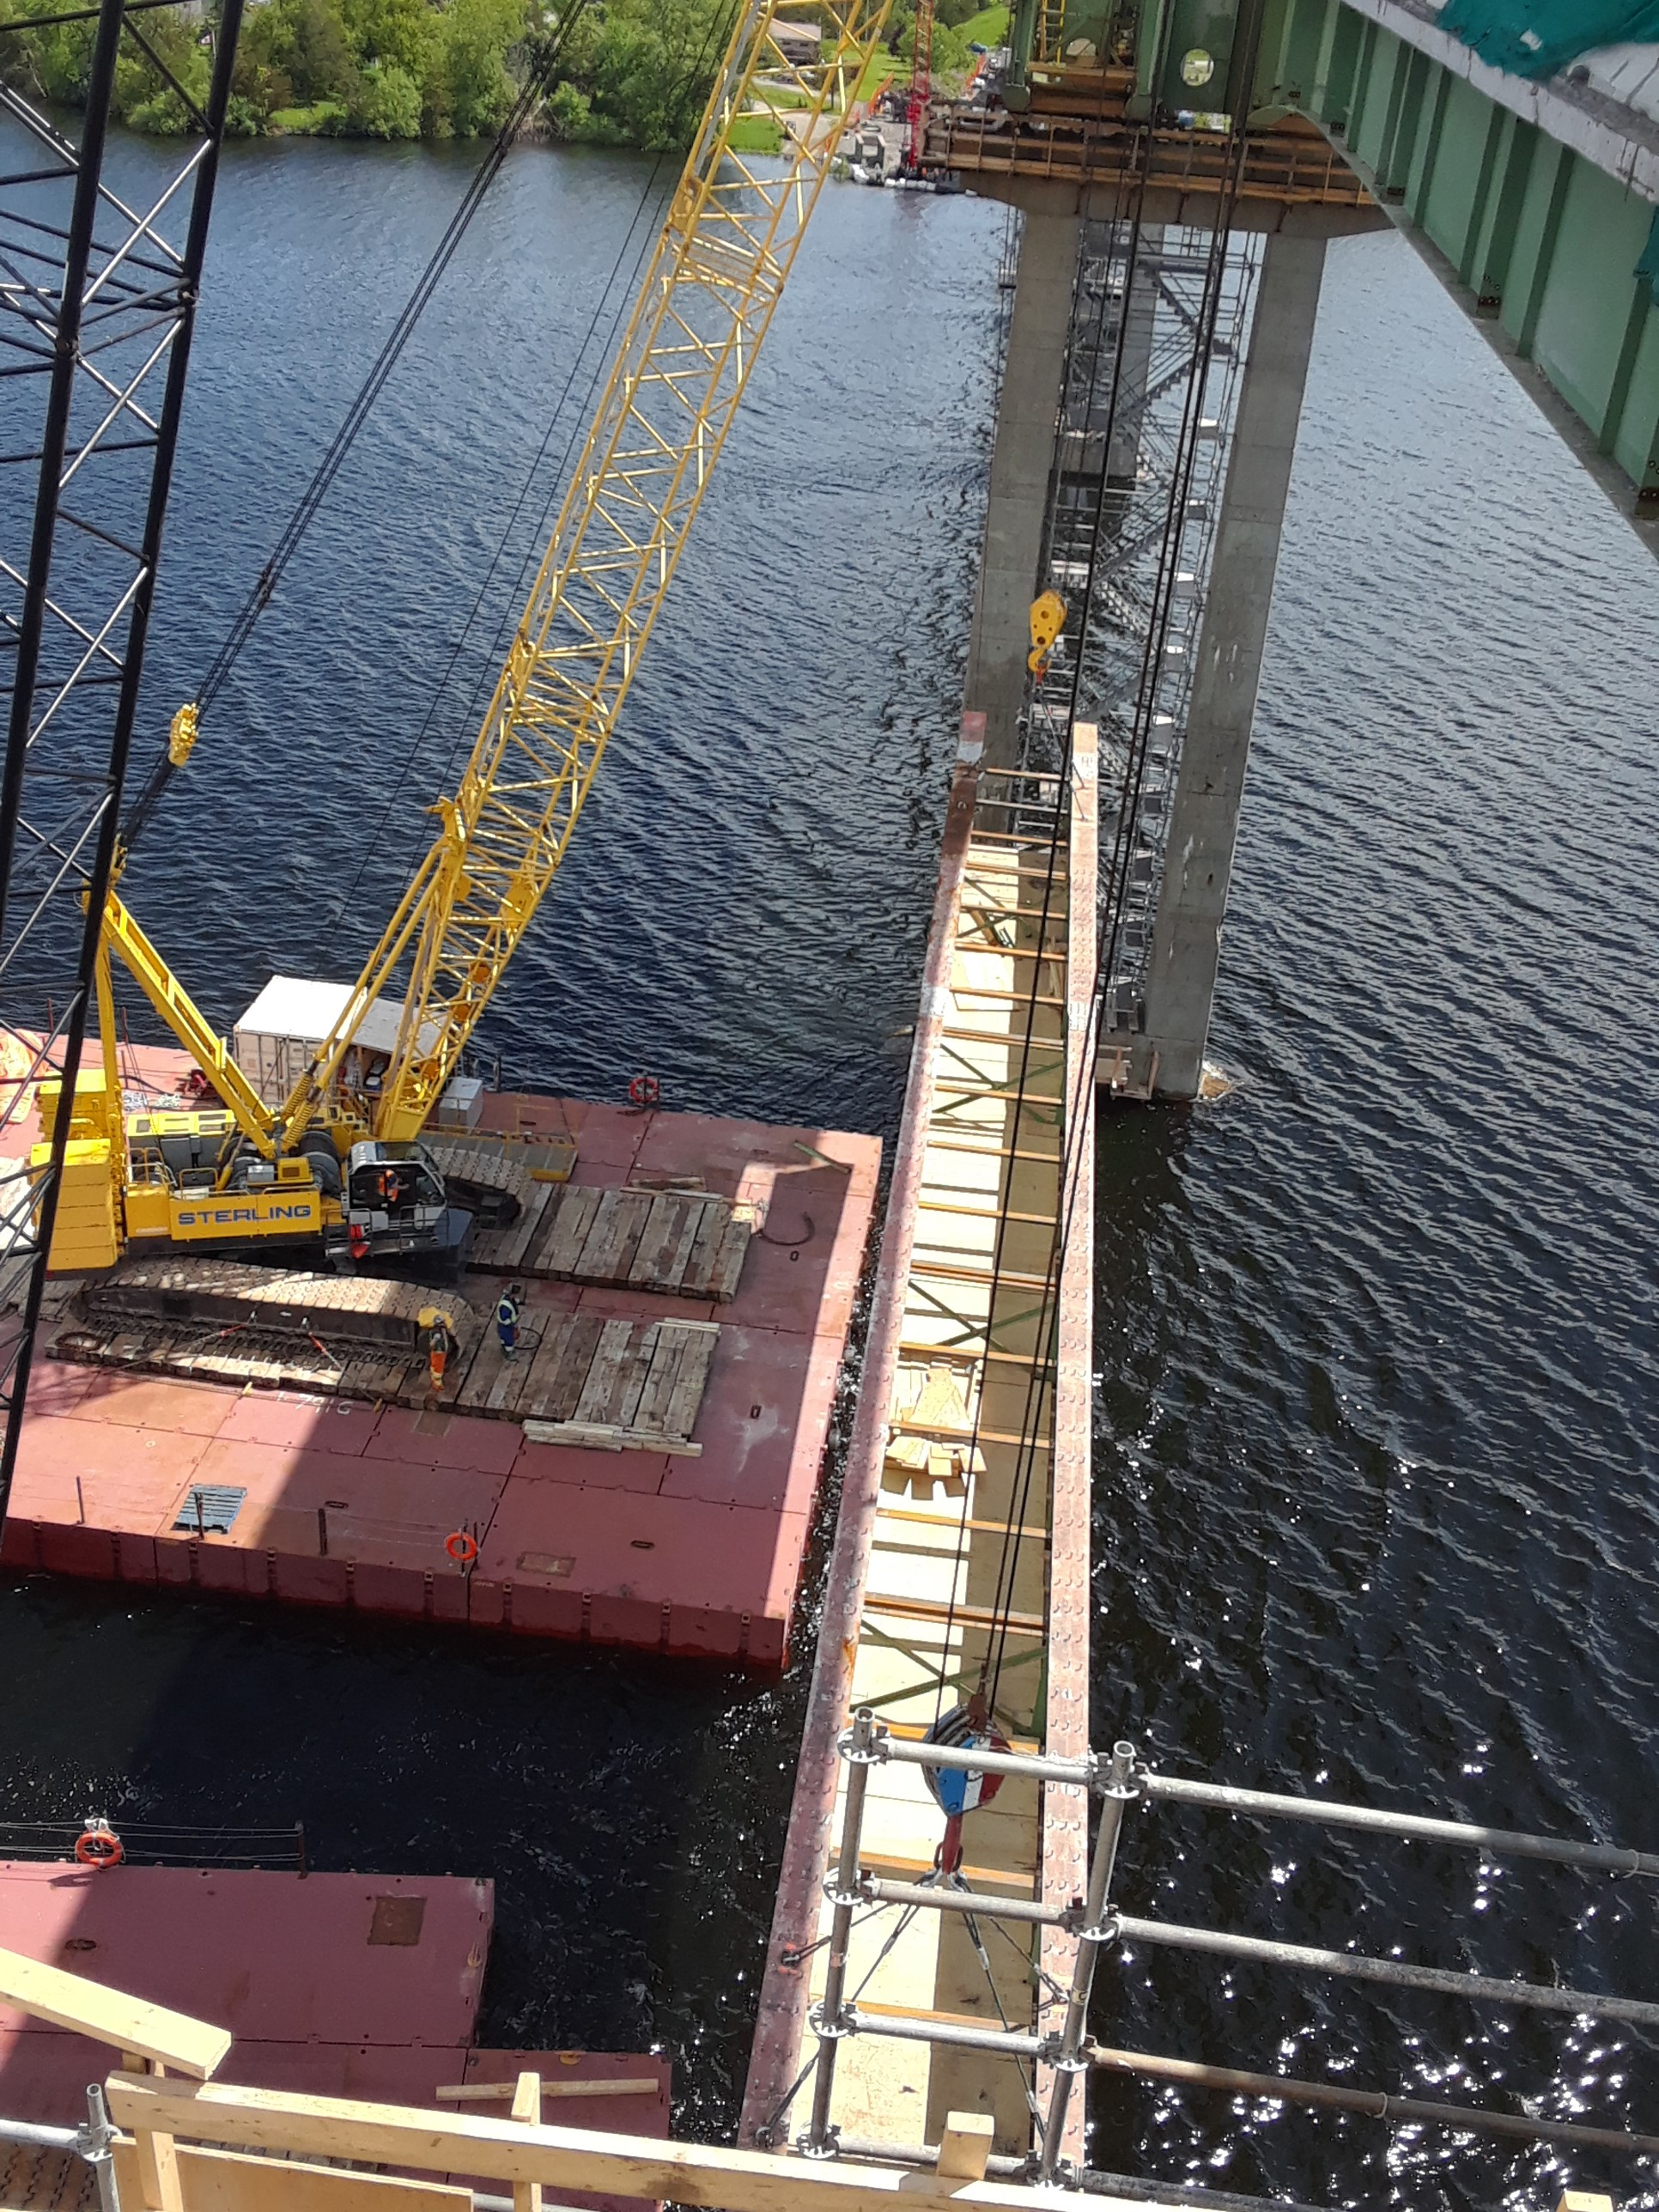 Large section of removed girder being lowered to the barges